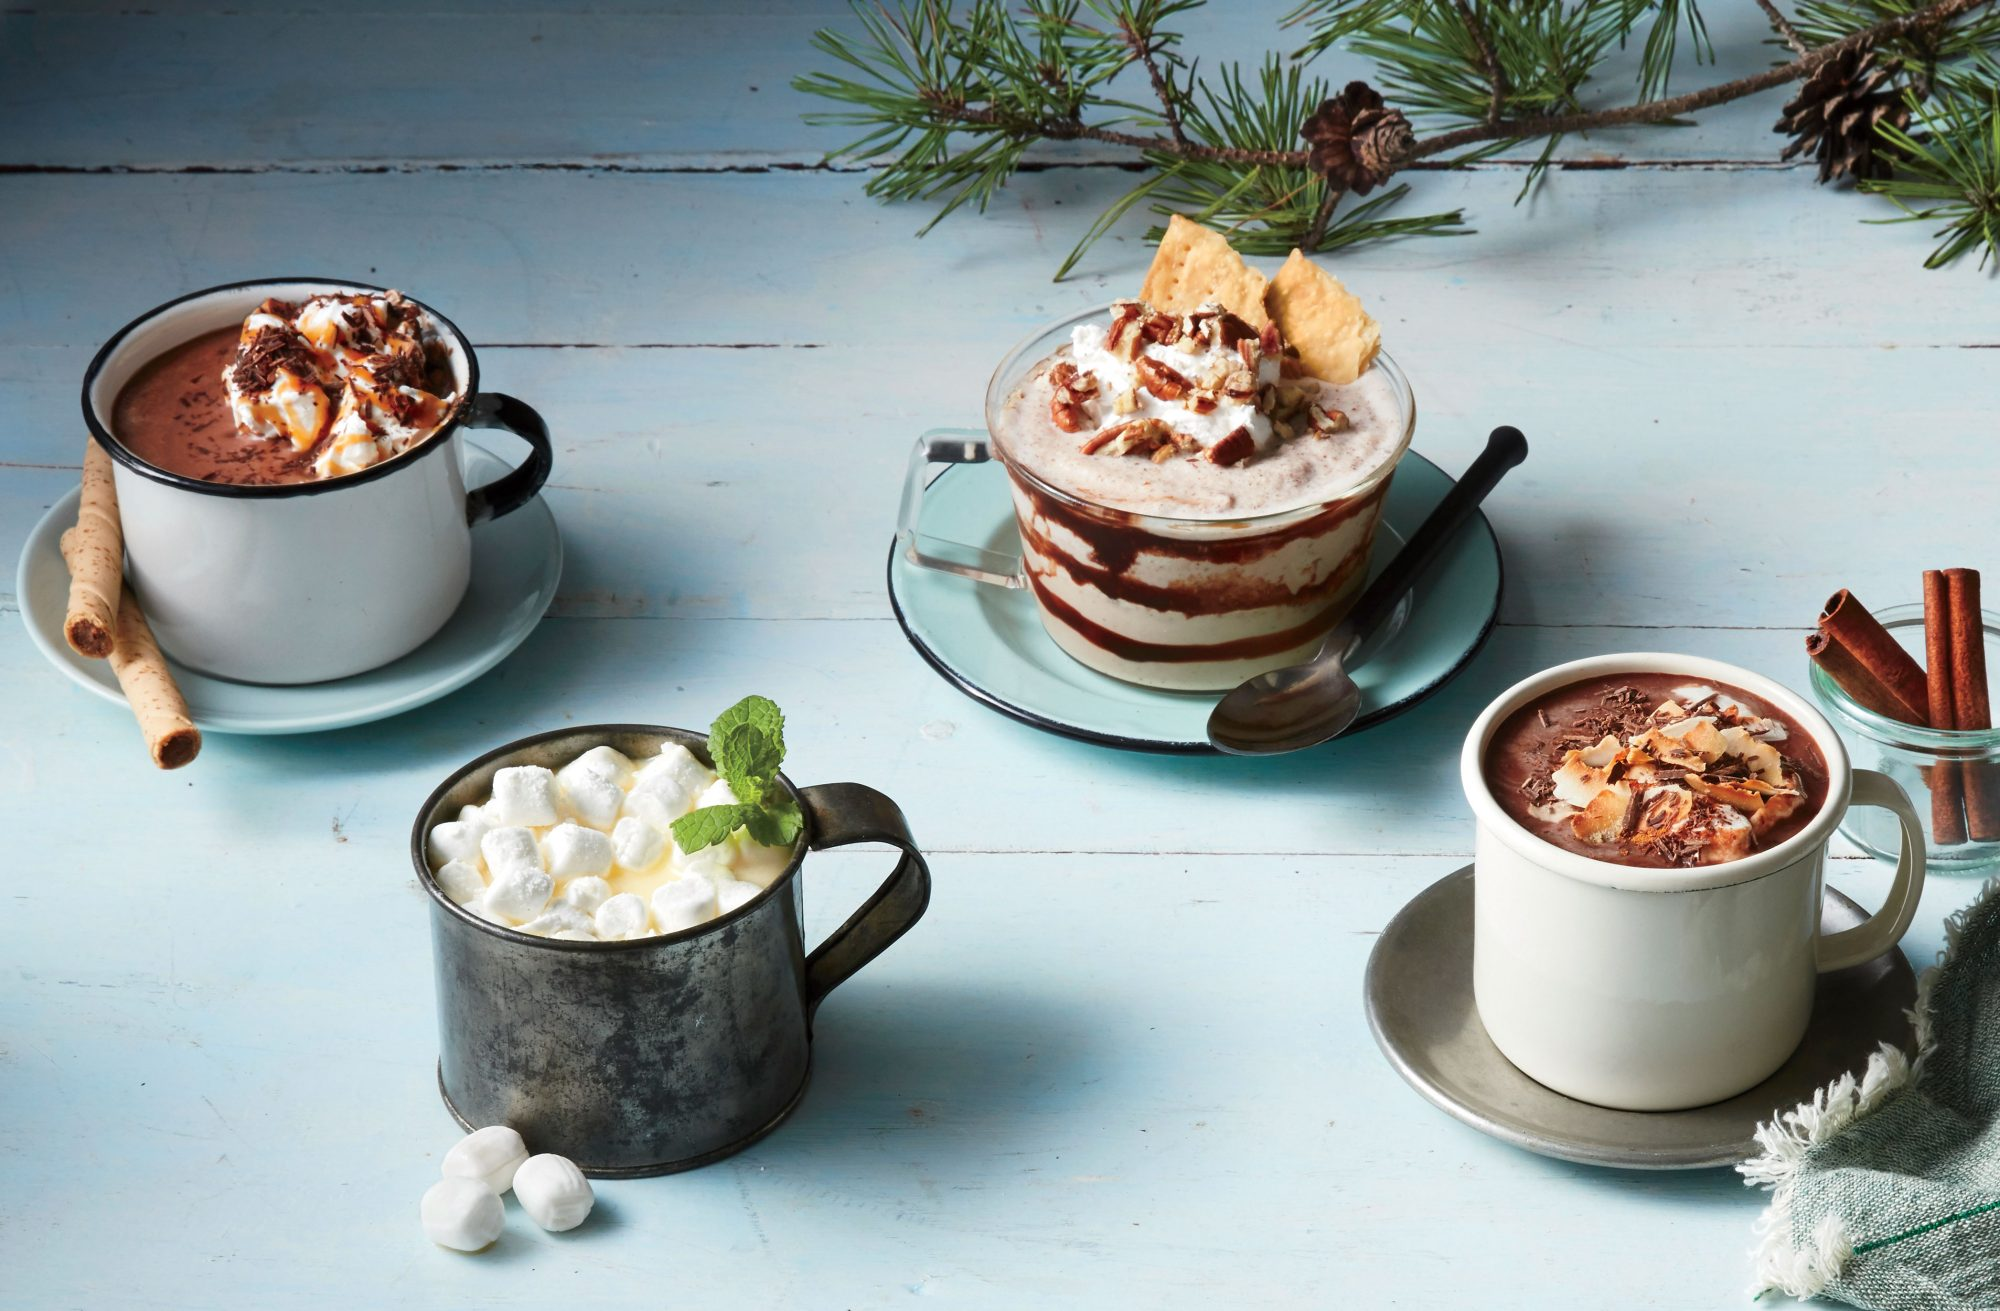 6 Delicious Ways to Spike Your Hot Chocolate